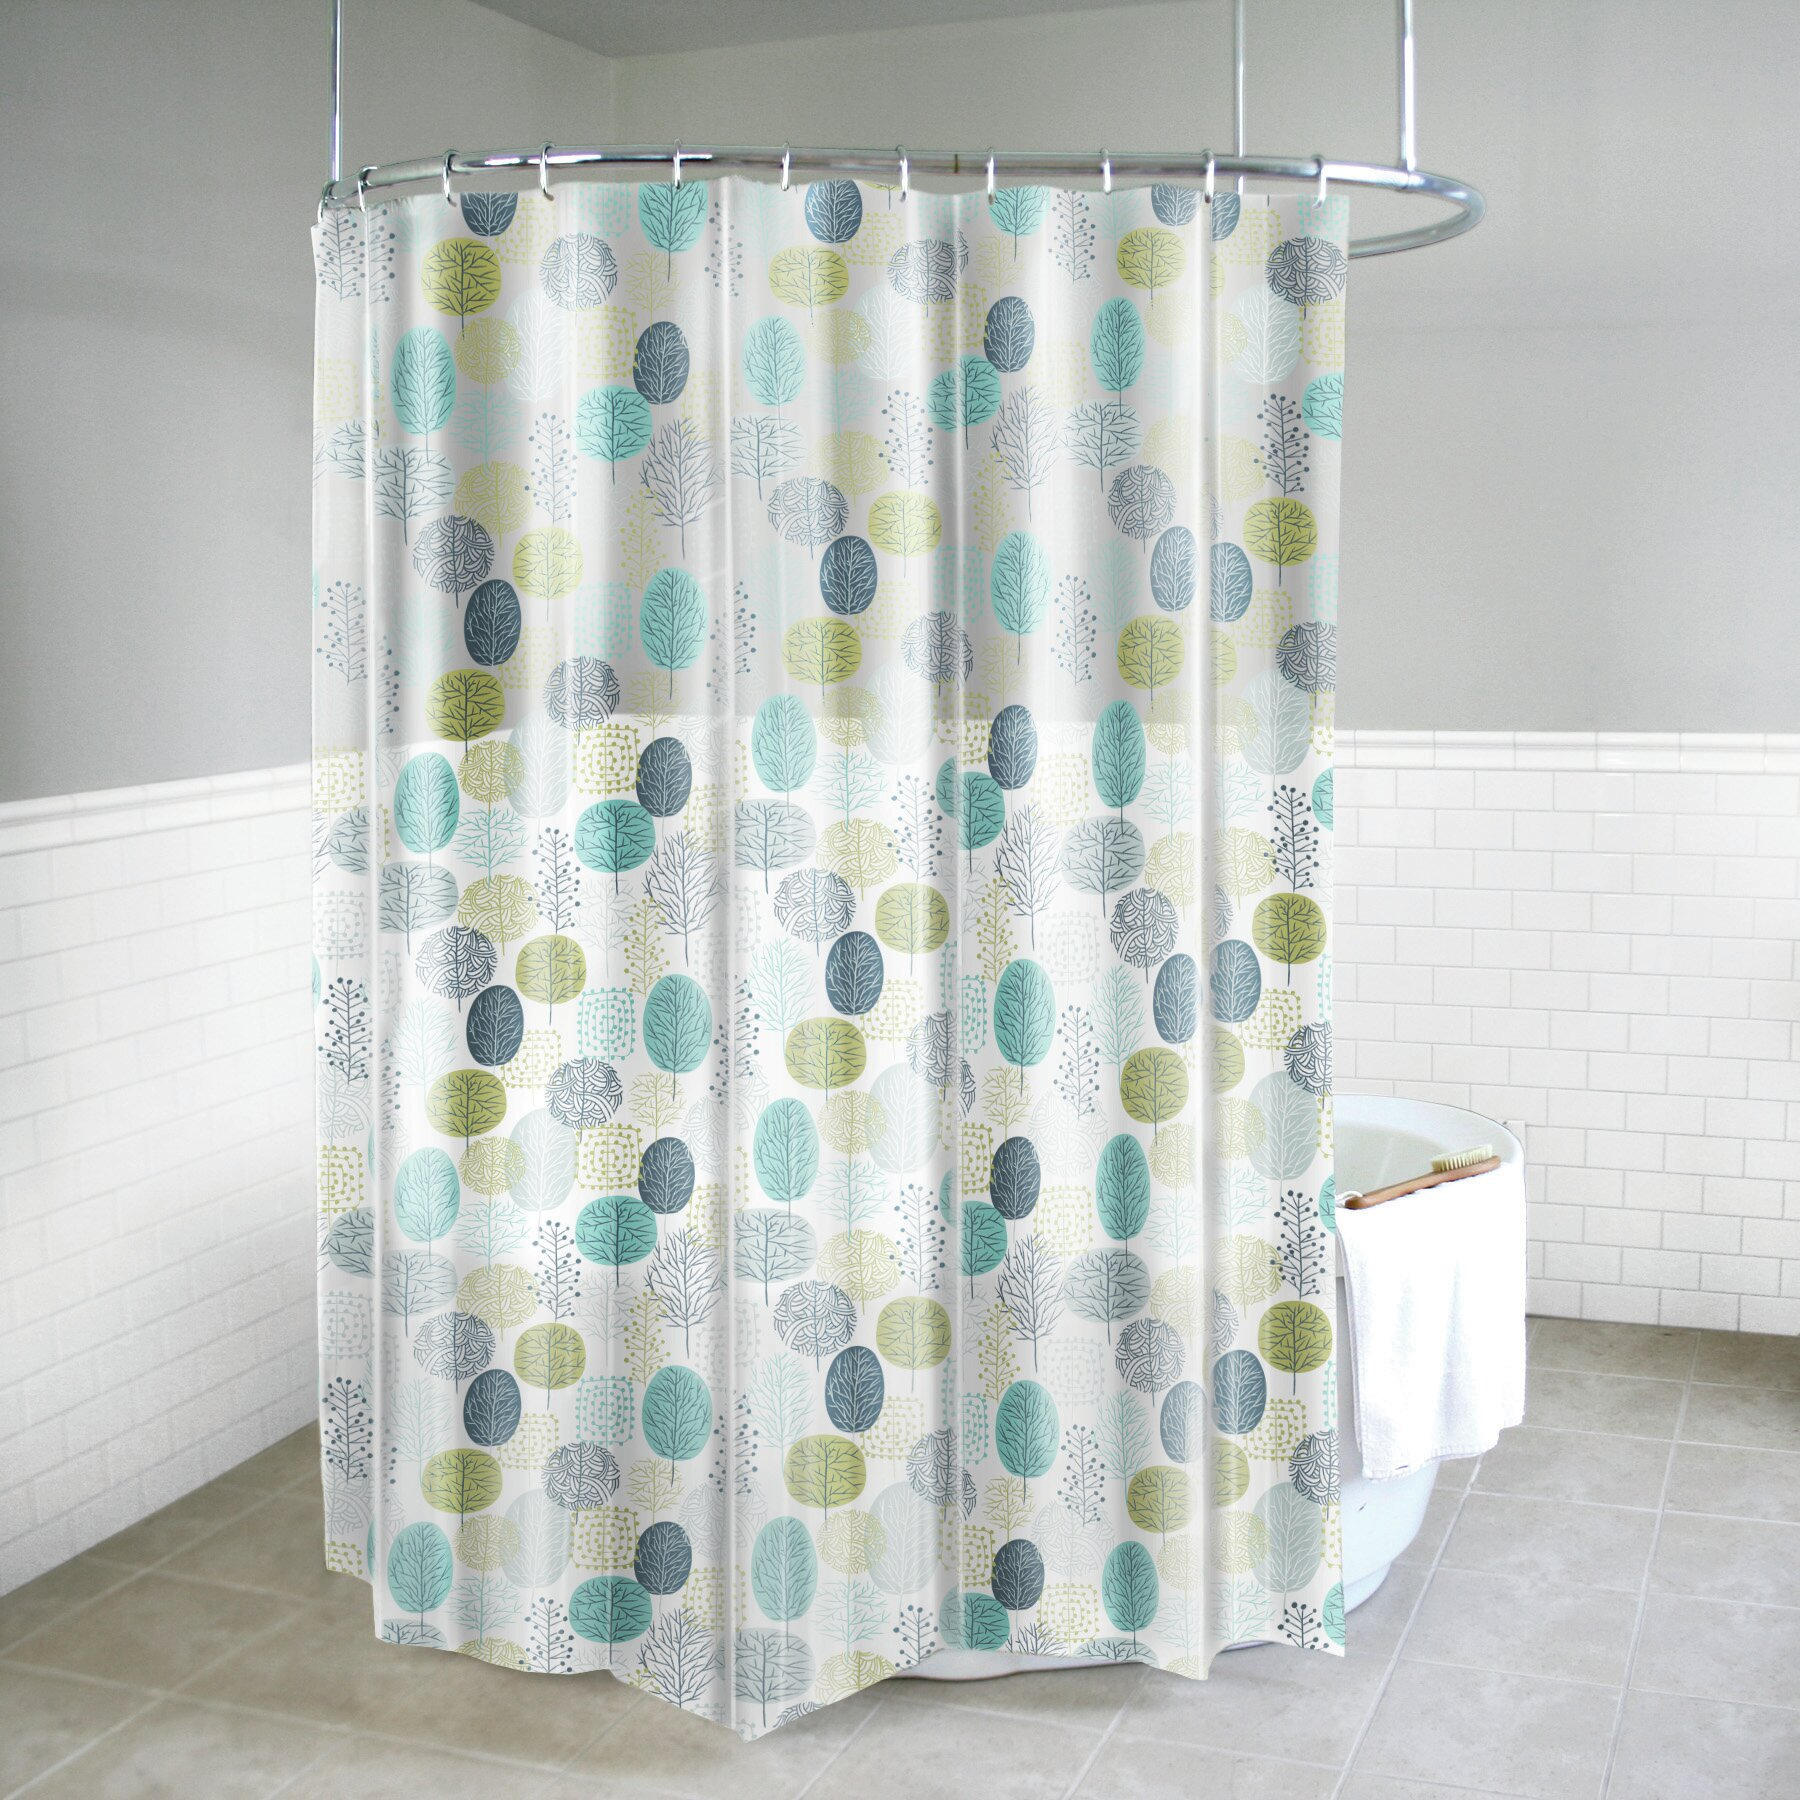 Splash Home Free of PVC Chlorine and Chemical Smell-100/% Waterproof 70 x 72 Inch 72 X 70 inch-Beige